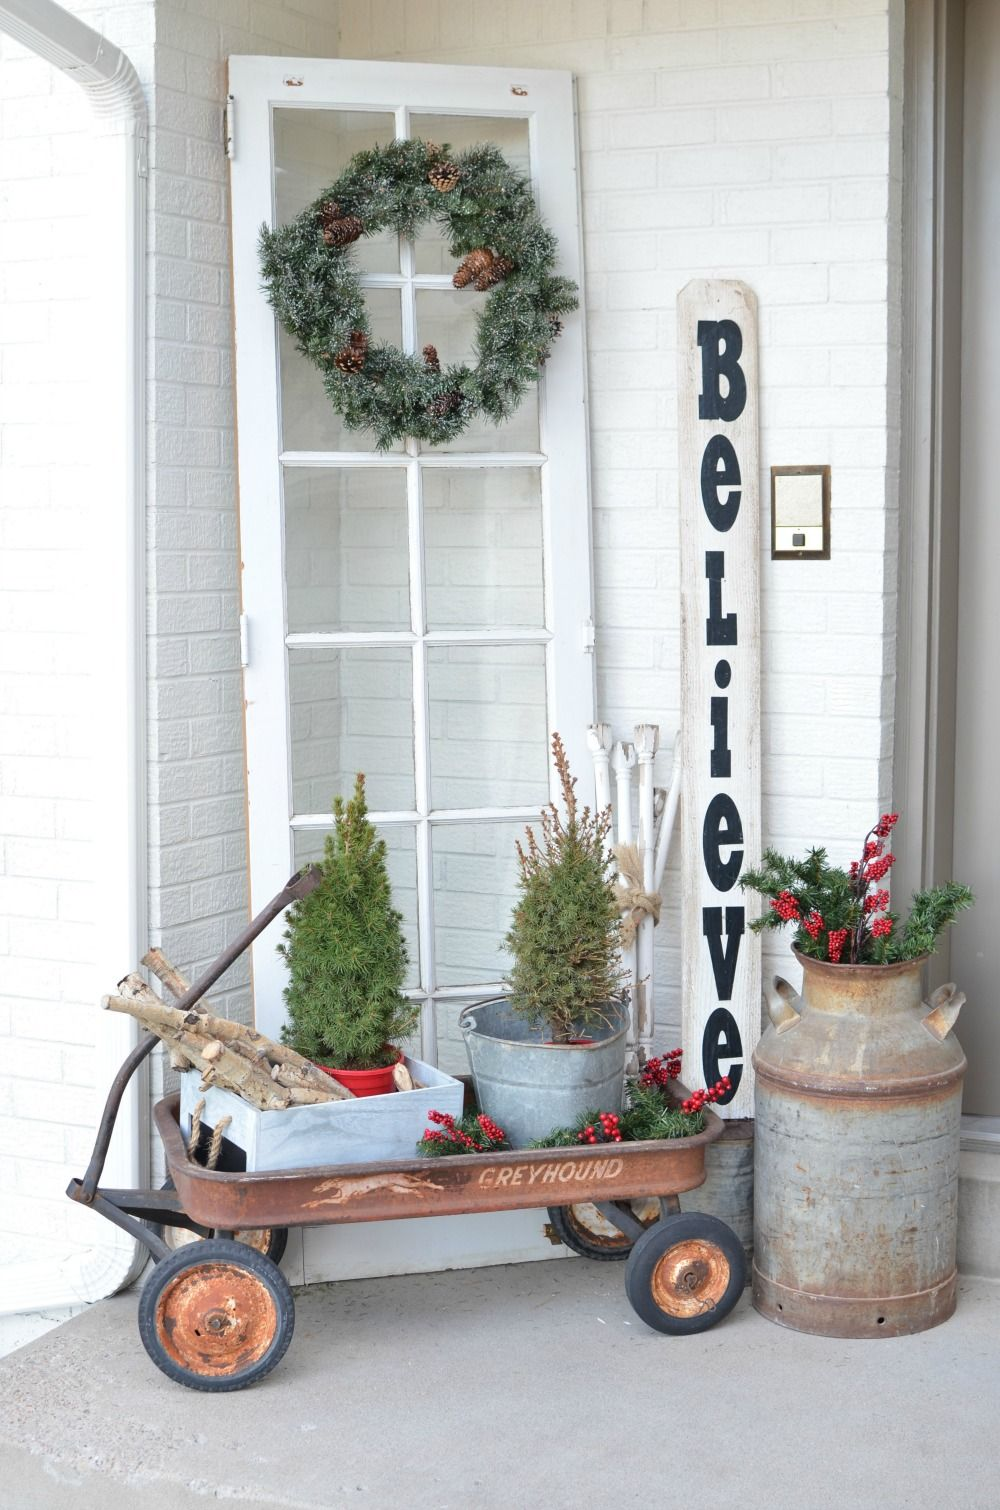 christmas on the front porch front porch ideas for christmasdecorating porch for christmasoutdoor